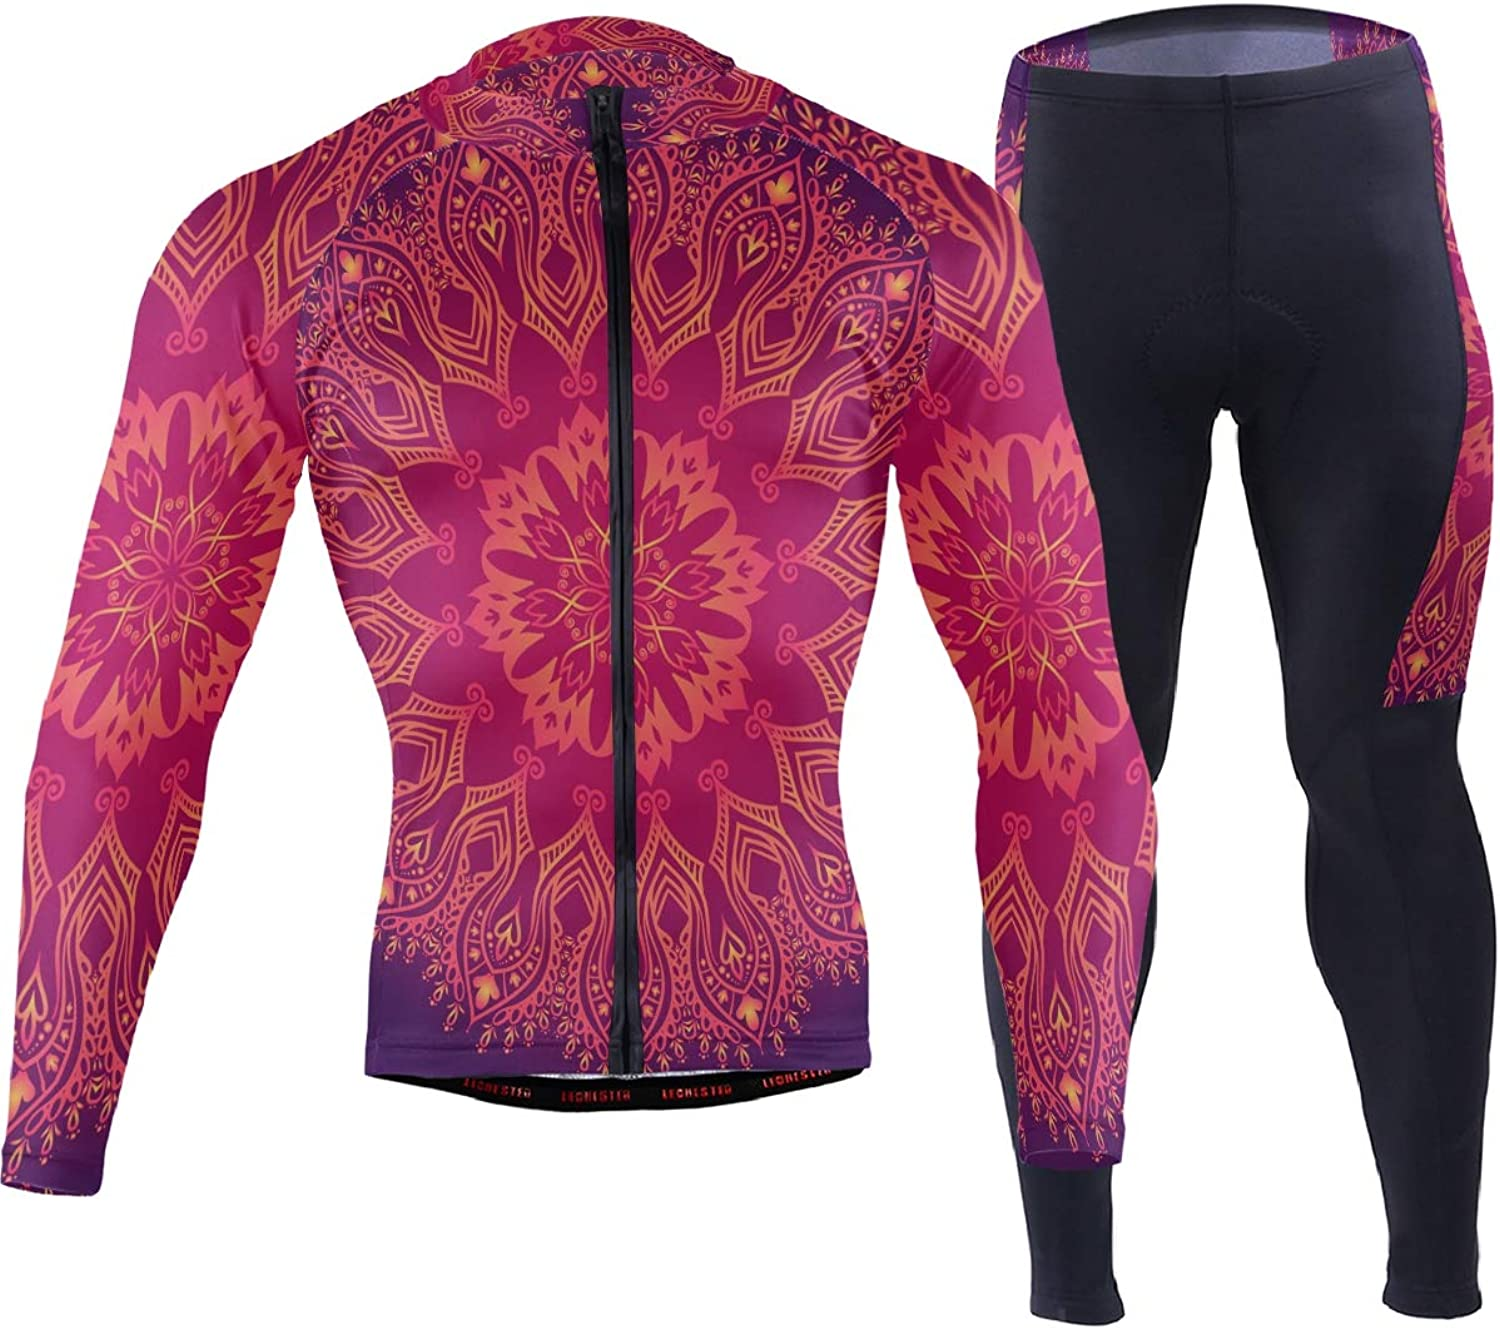 FAJRO Purple Abstract Pattern with Lace Floral Ornament Sportswear Suit Bike Outfit Set Breathable Quick Dry 3D Padded Pants